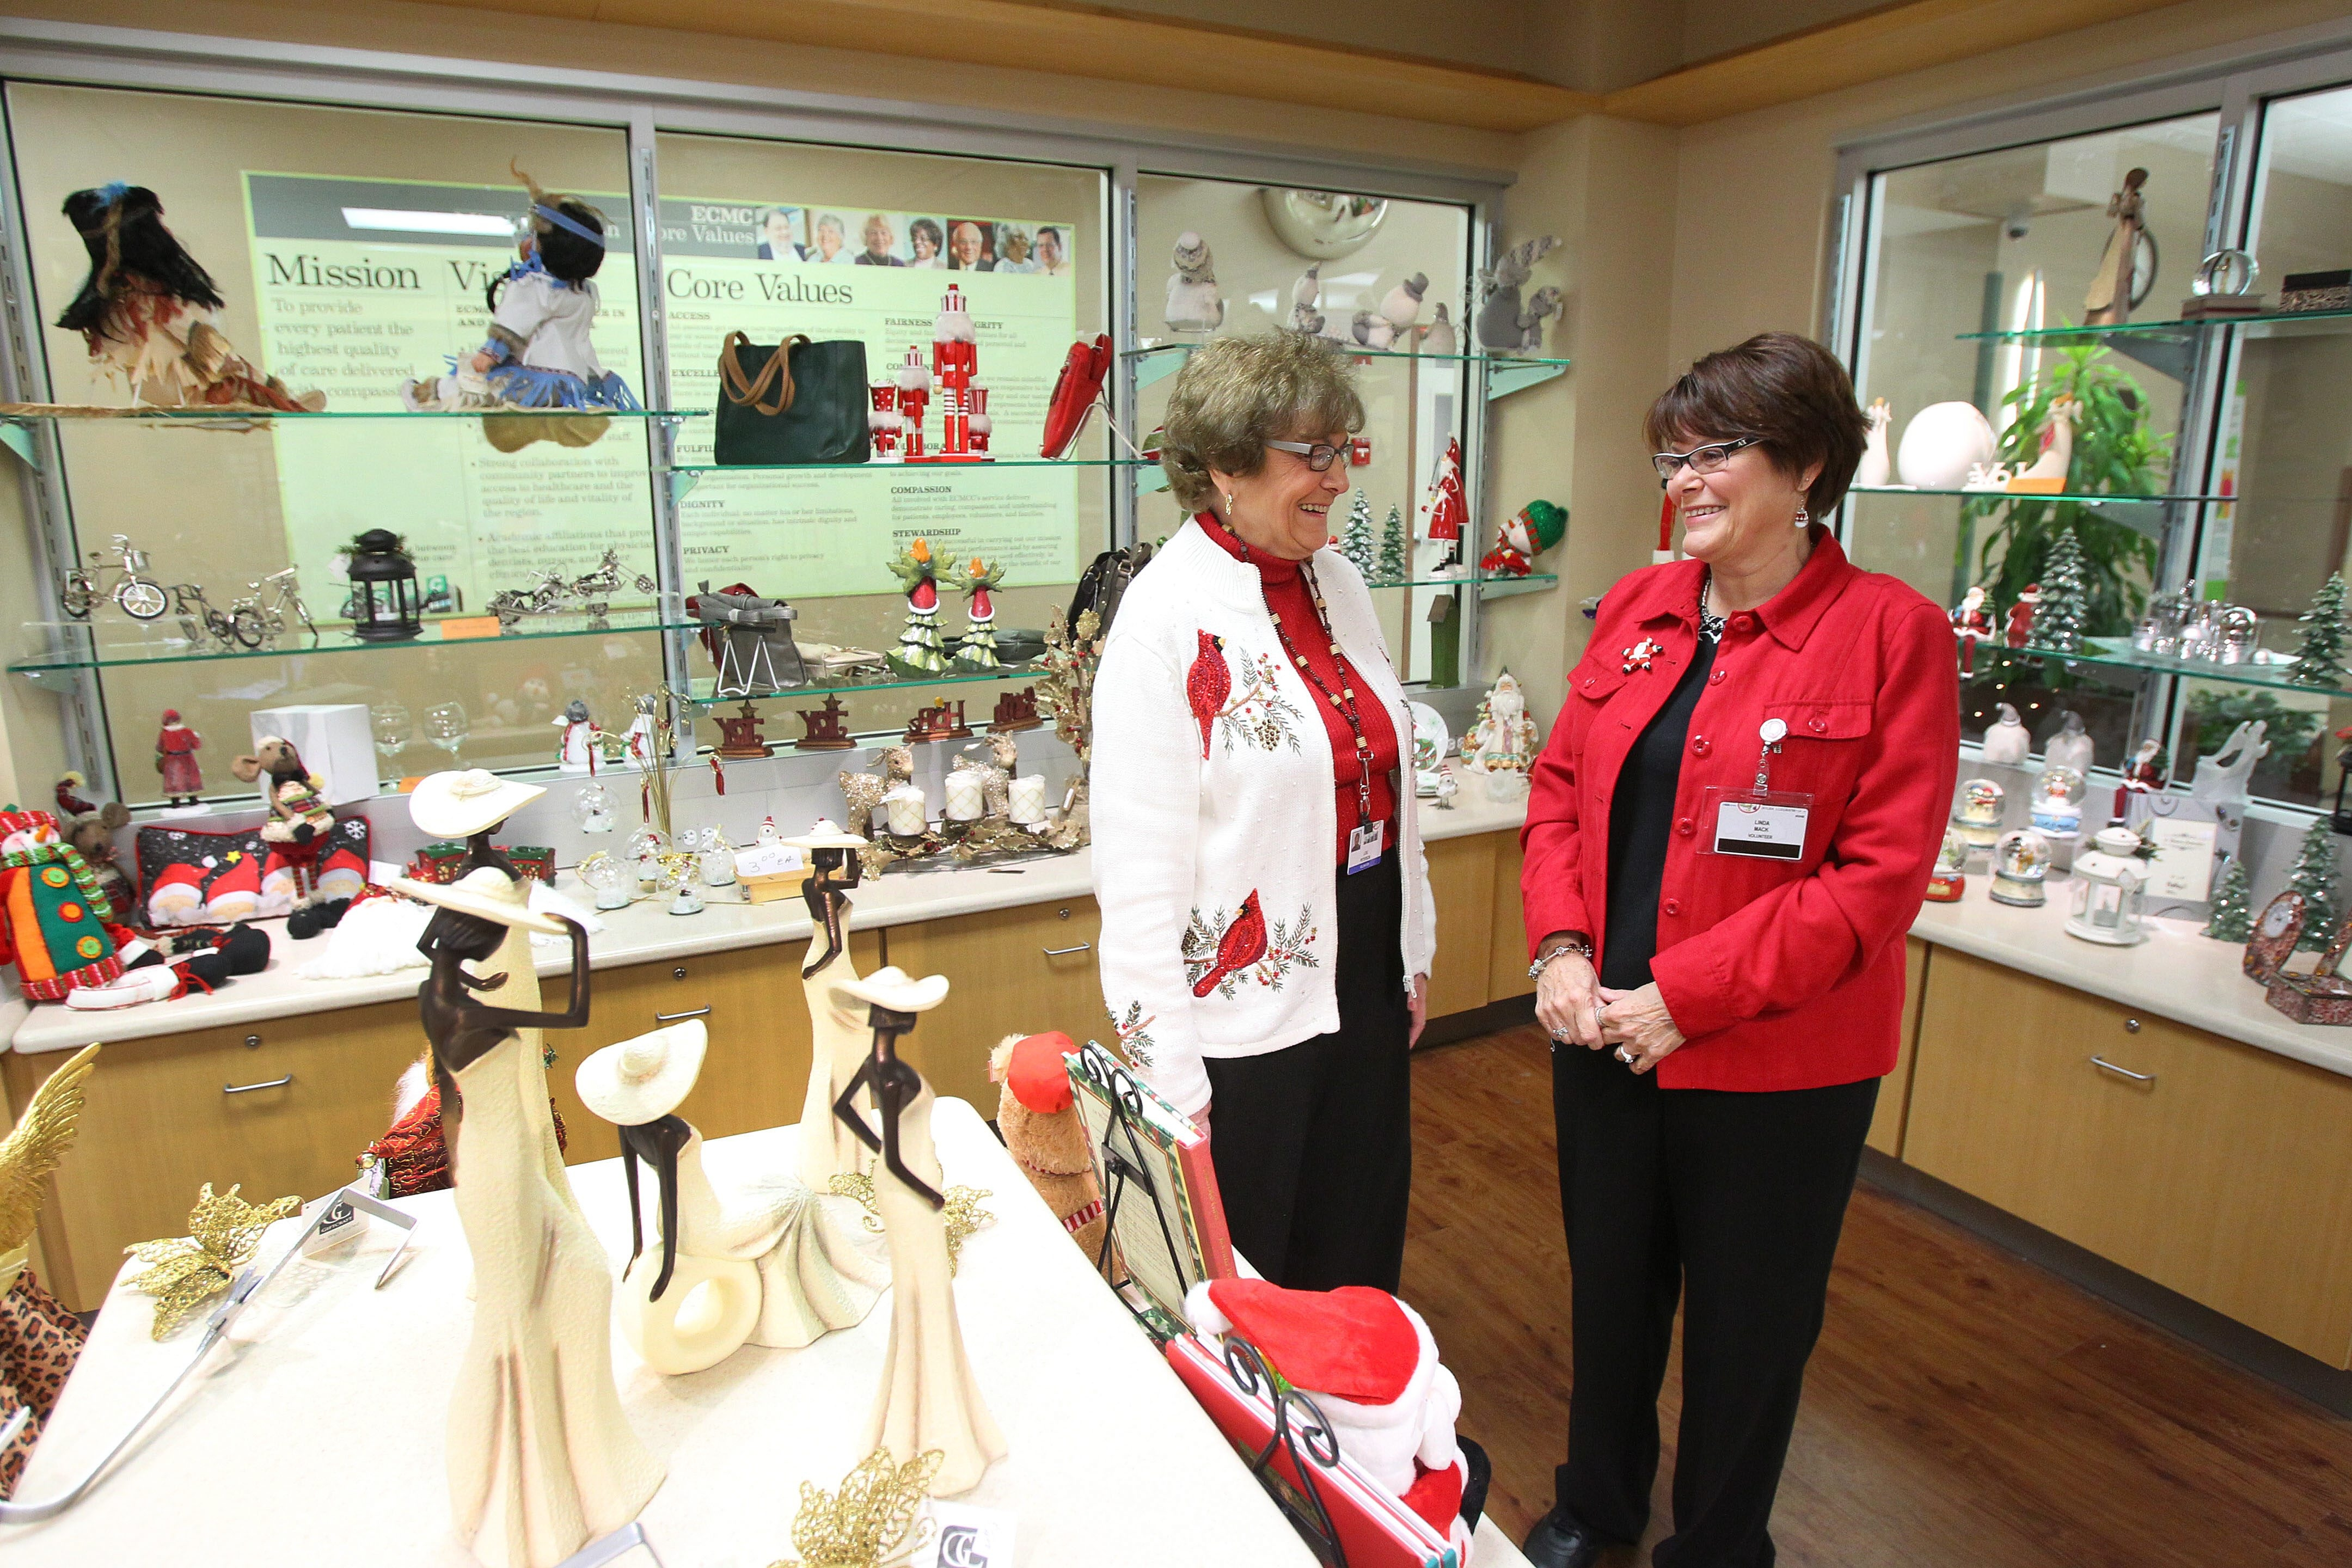 Volunteers Lois Peterson, left, and Linda Mack, right, at the Gift Shop in ECMC on Dec. 11, 2013.